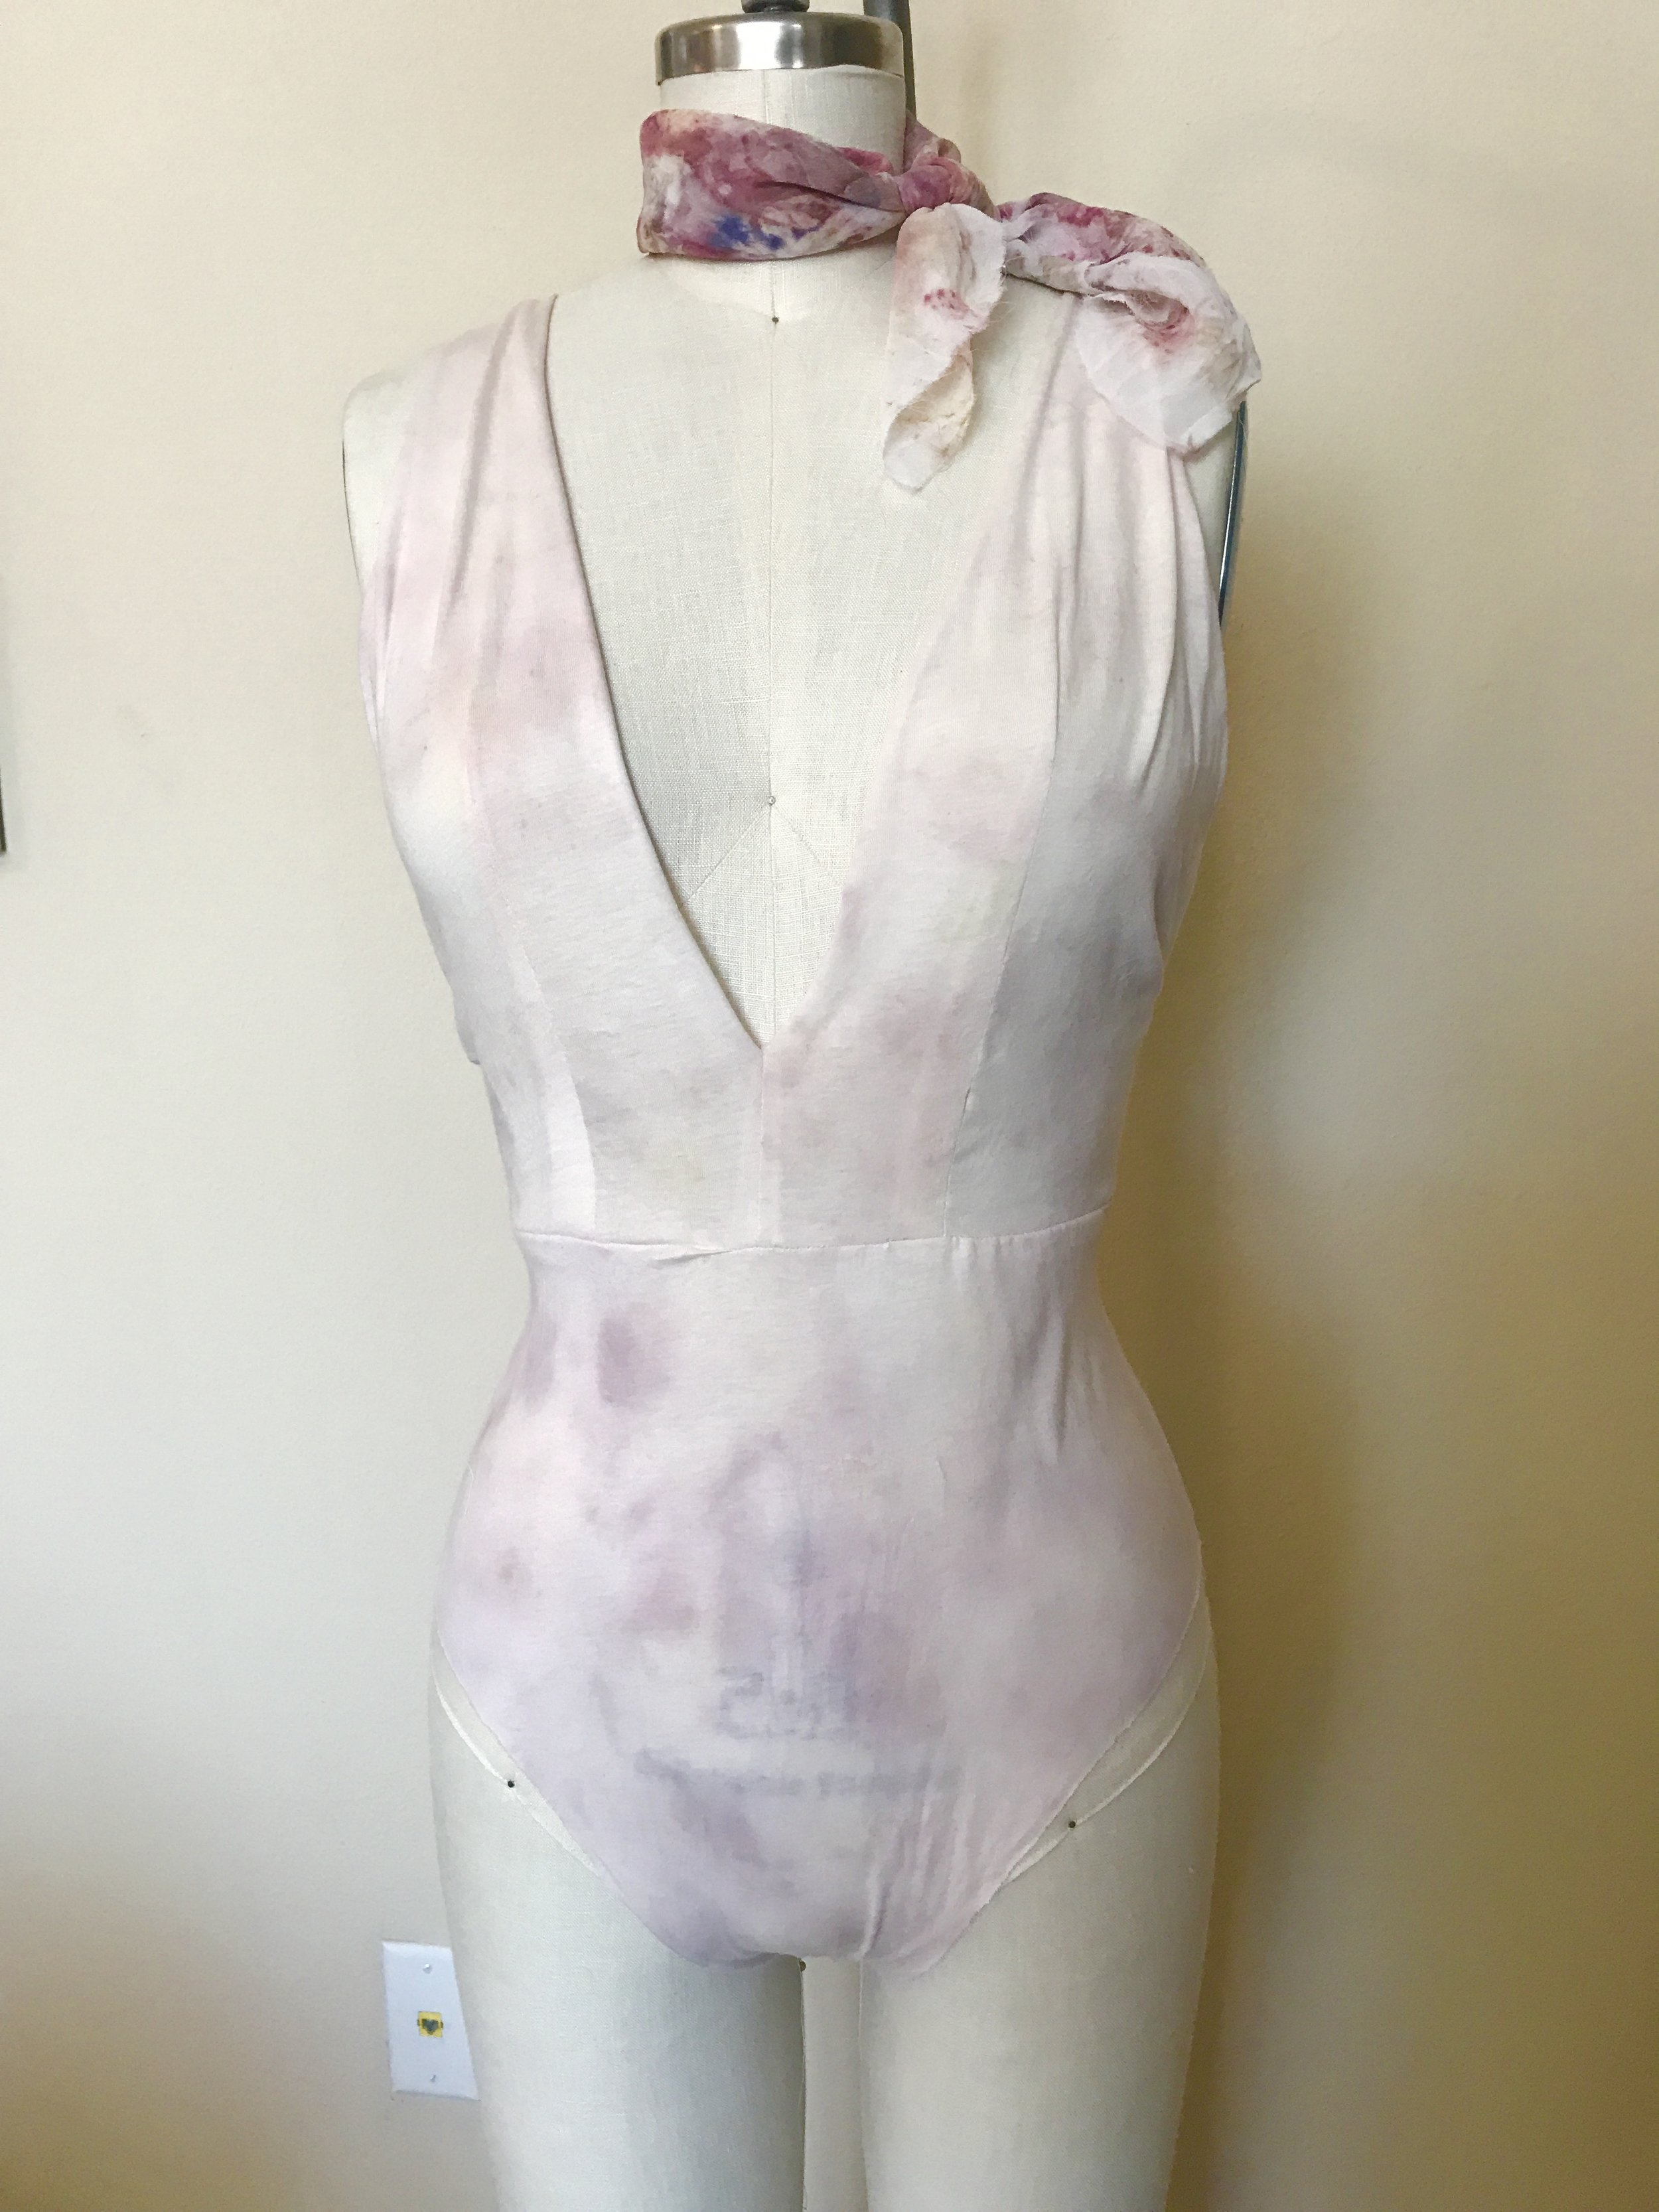 Knit cotton bodysuit, hand dyed with steamed flower petals